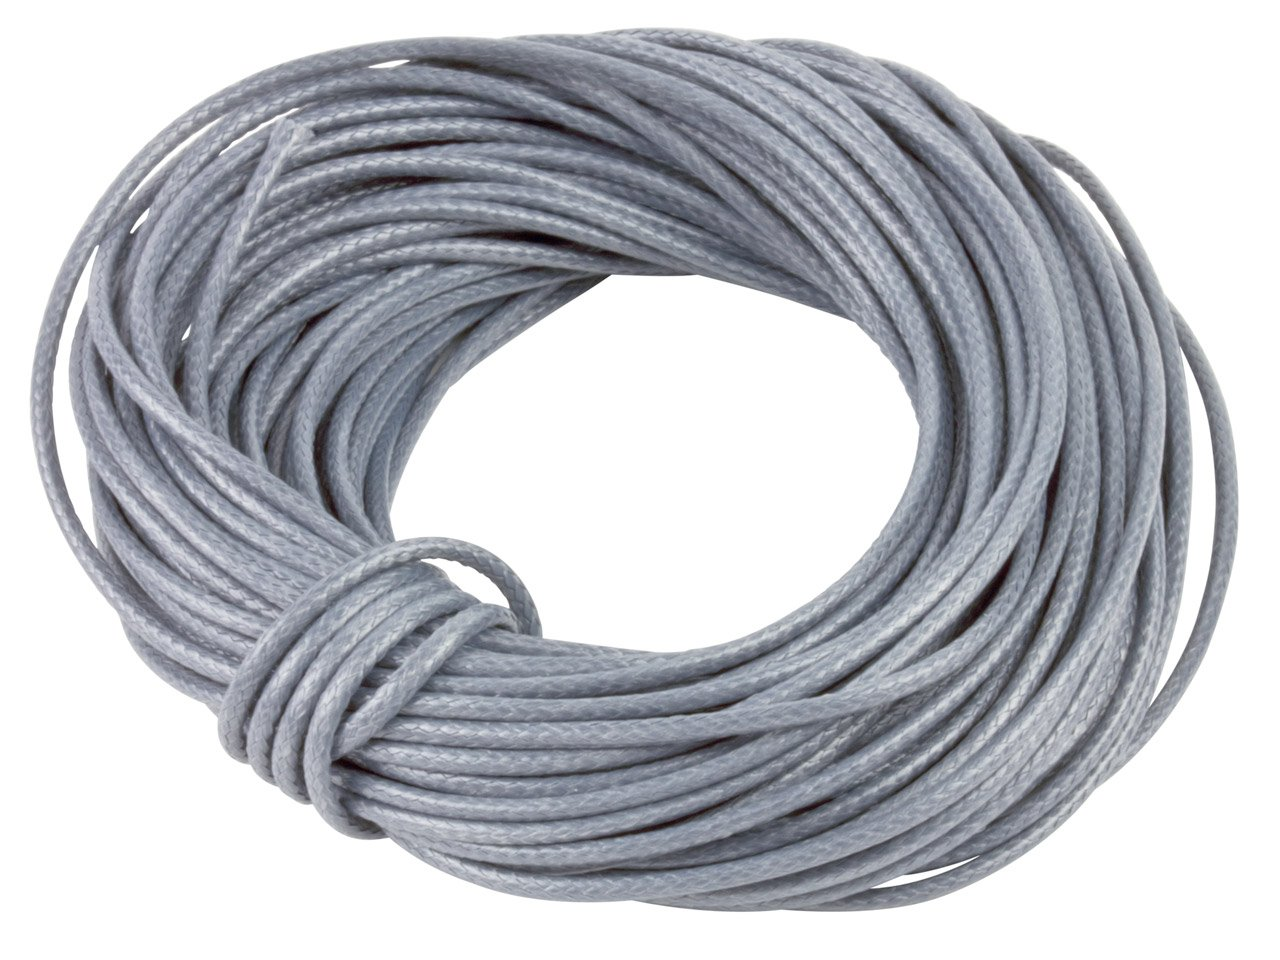 1mm x 10mtr Grey Cotton Cord for shamballa, macramé, kumihimo jewellery Cooksongold